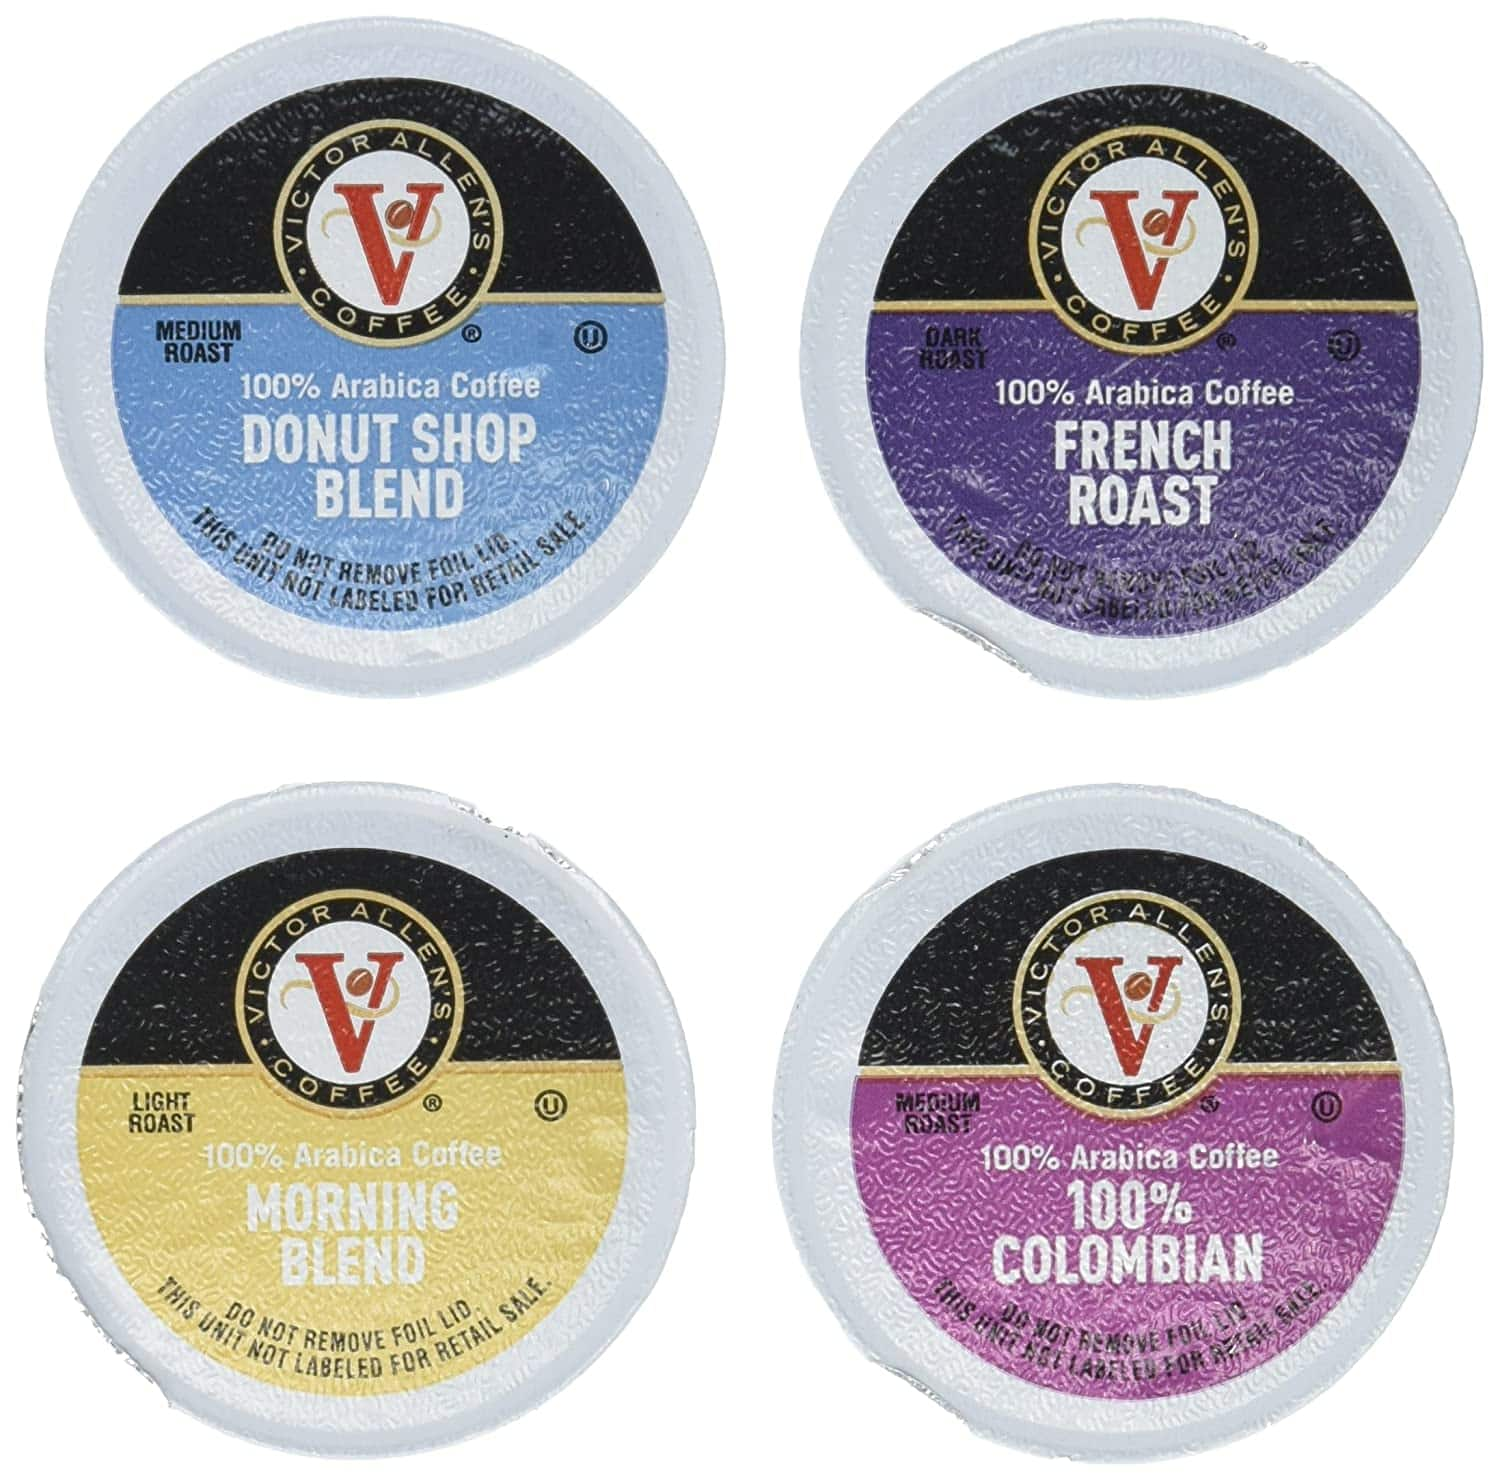 42-Count Victor Allen Single Serve Coffee K-Cup (Variety Pack) $9.80 w/ S&S + Free Shipping w/ Prime or on $25+